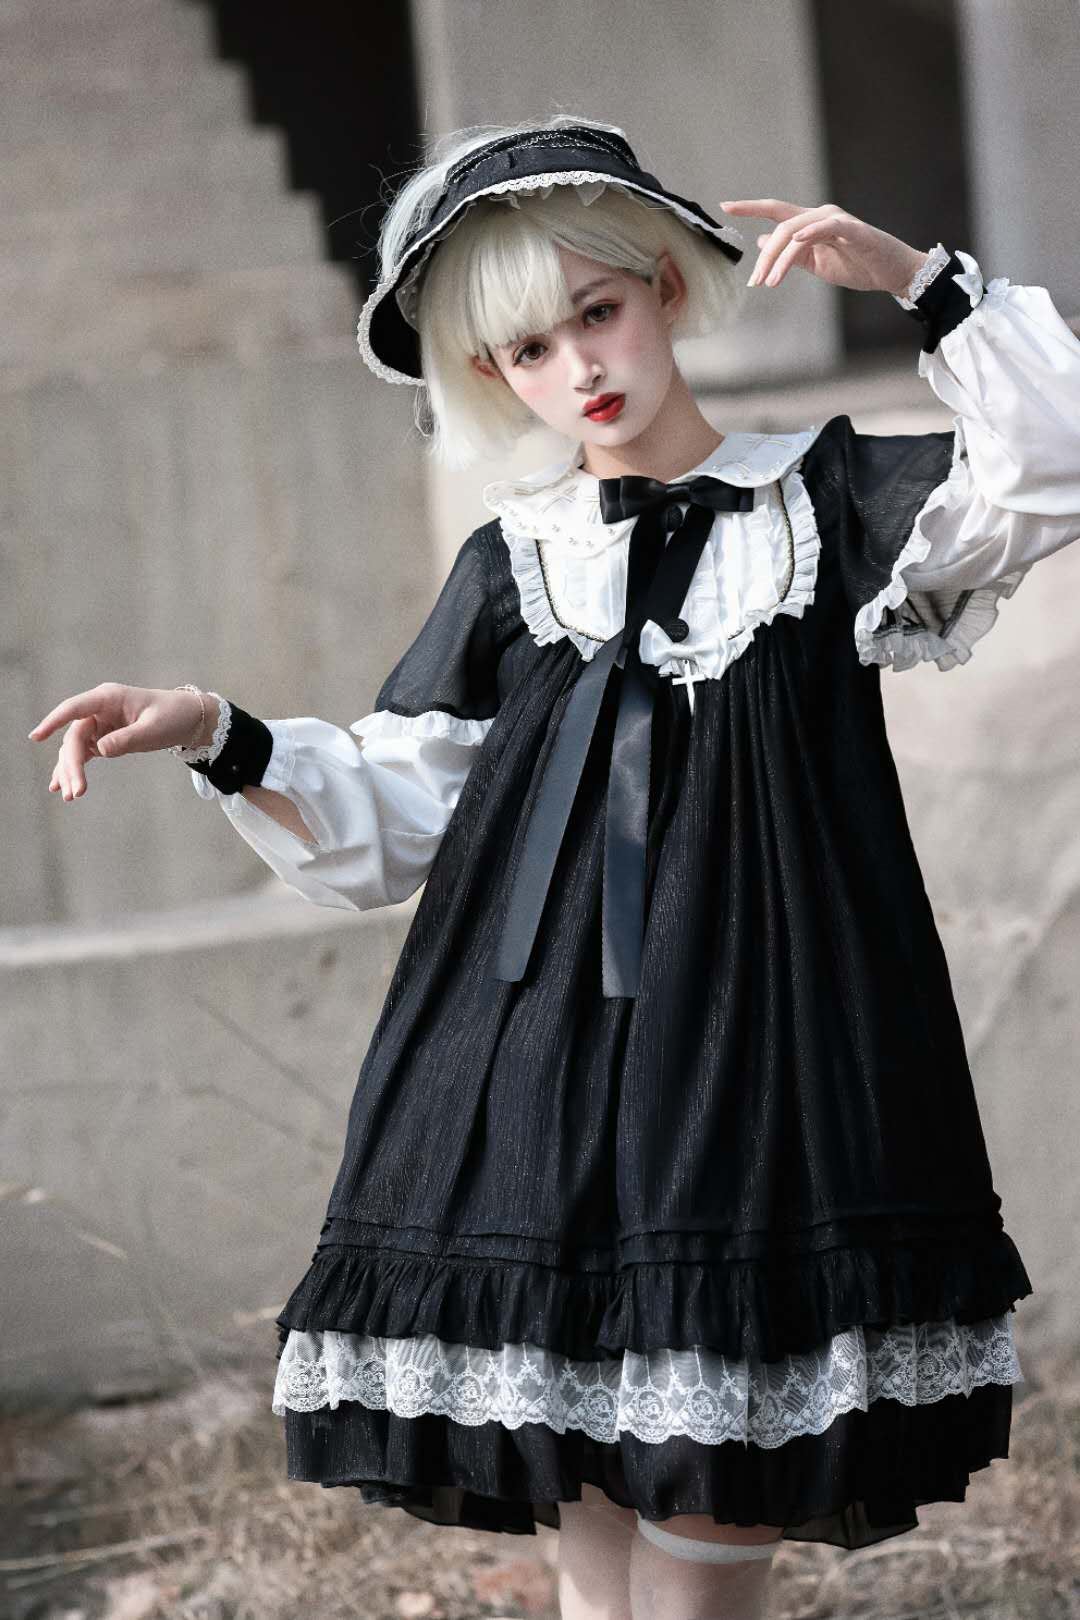 [seven baby] in the process of production of Utopia OP dress